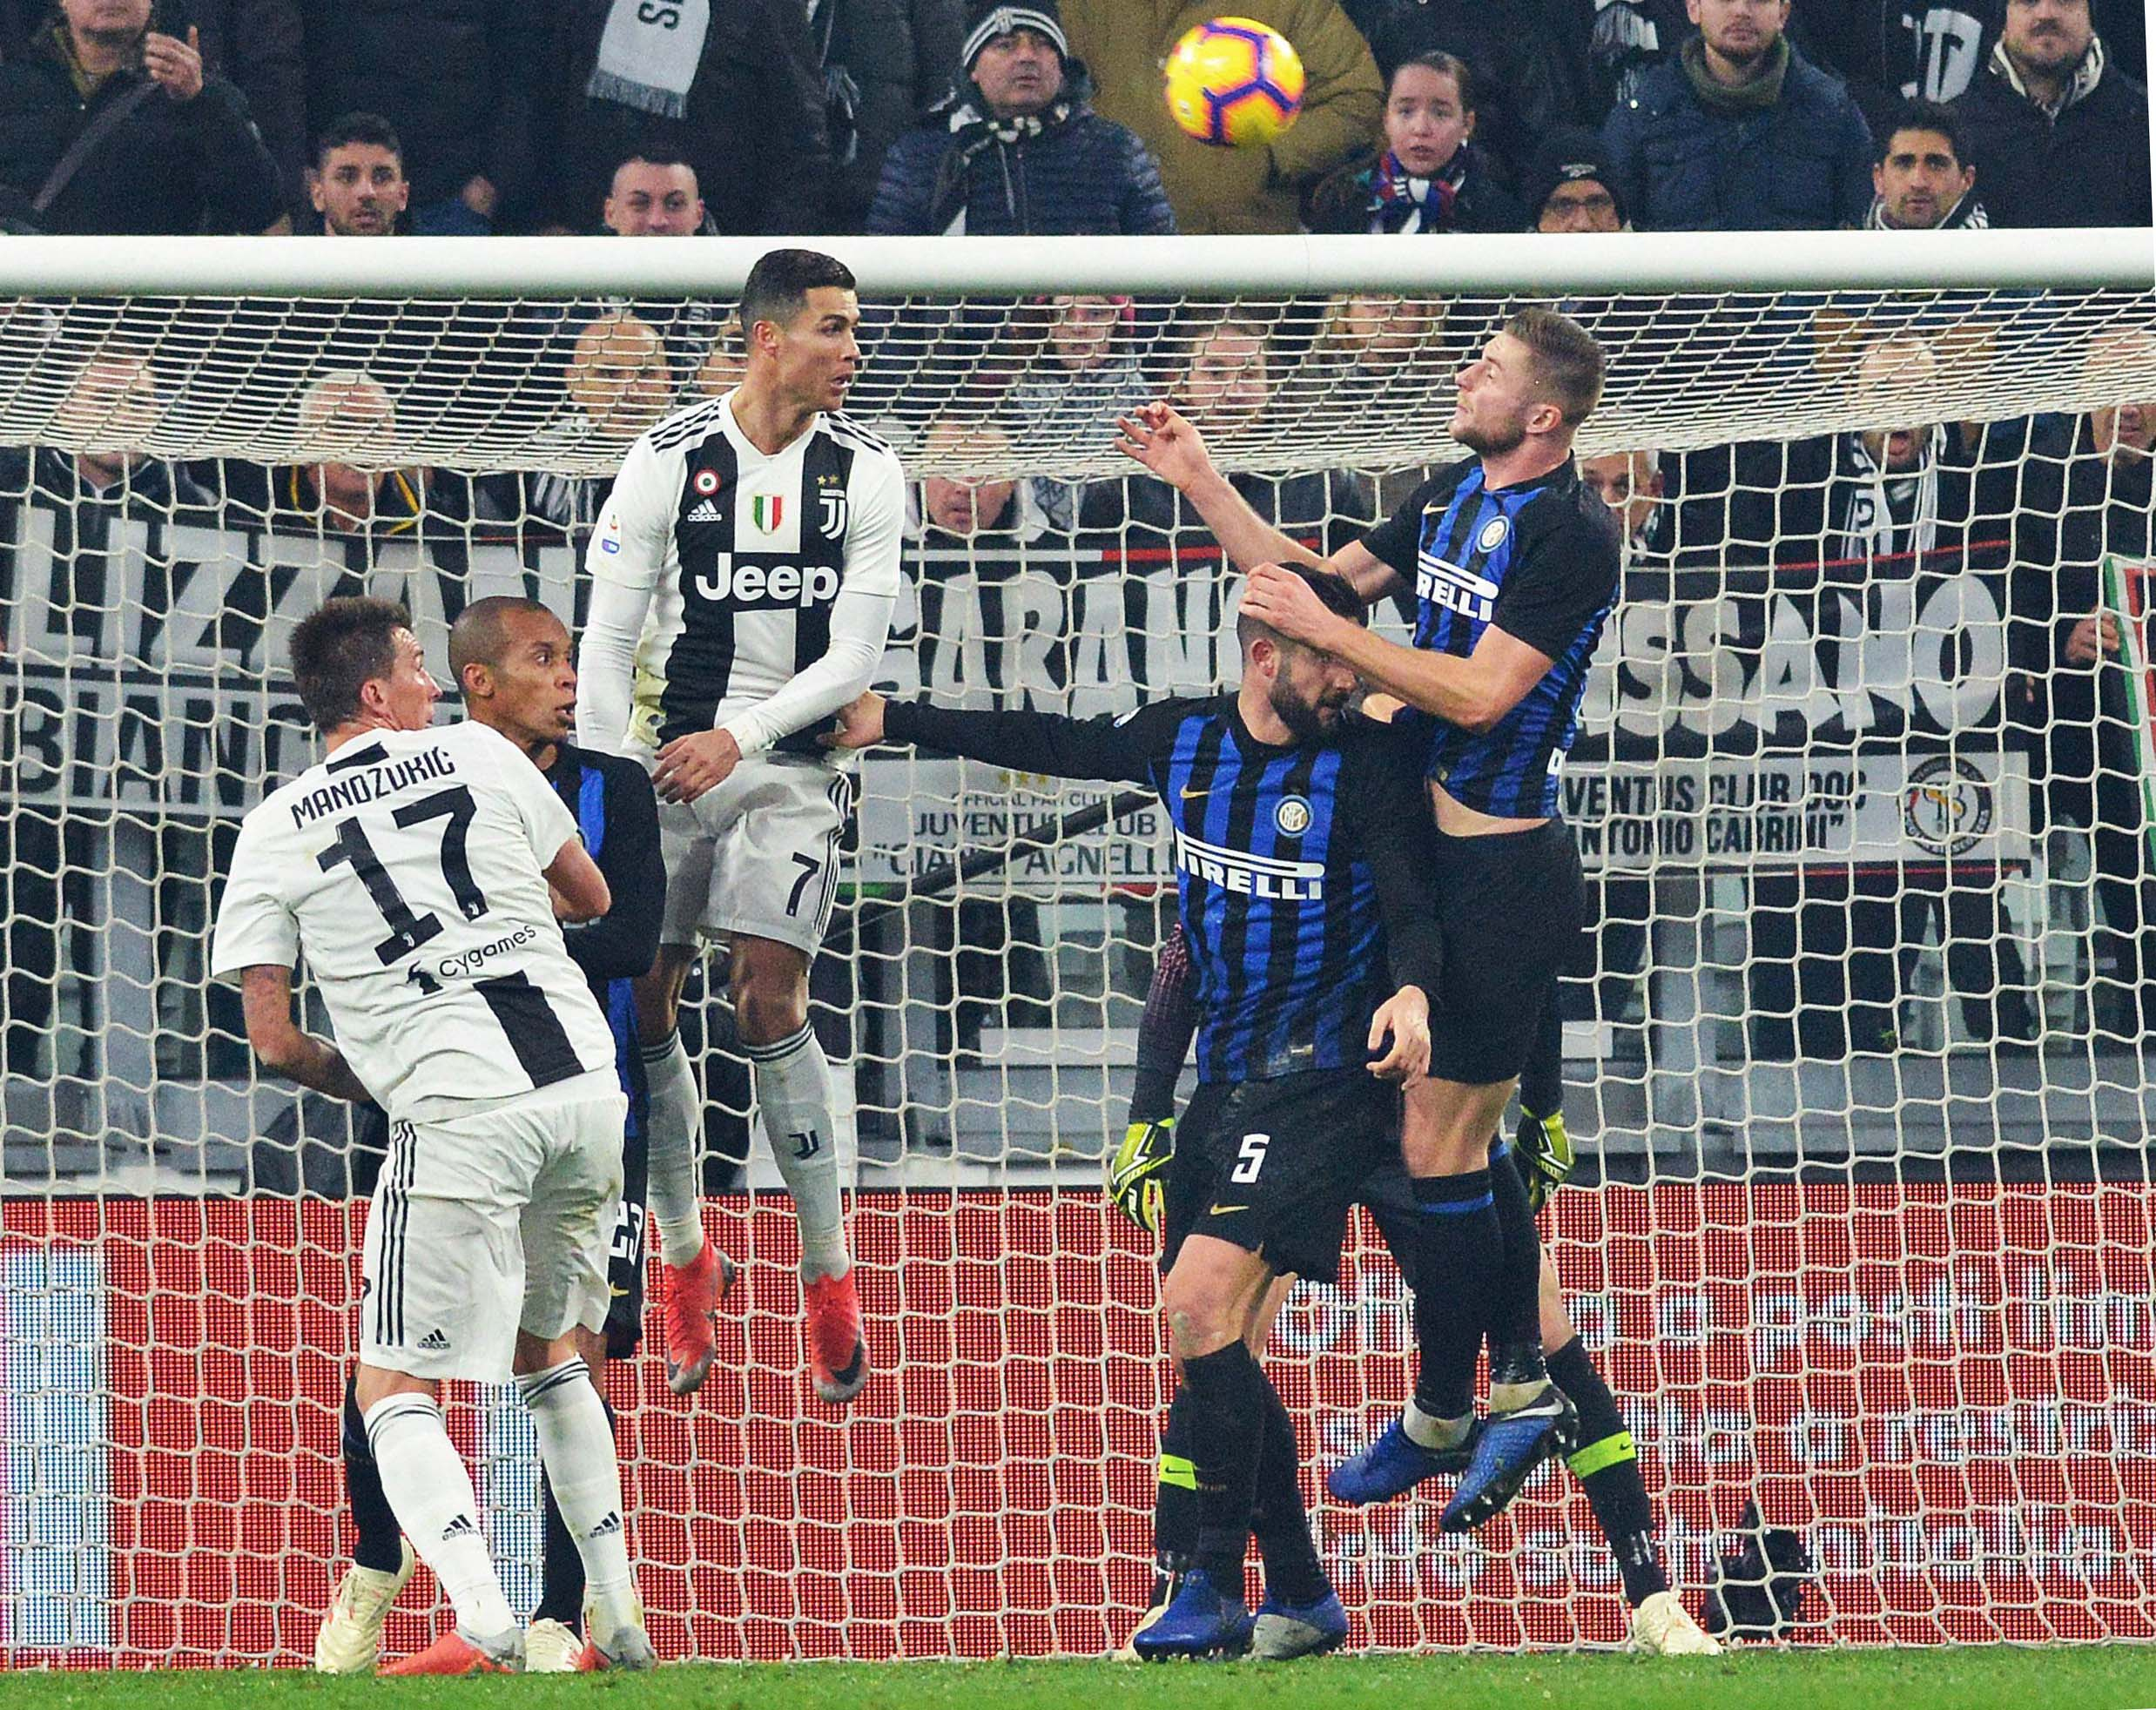 Juventus beat Inter 1-0 to open up 11-point lead in Serie A